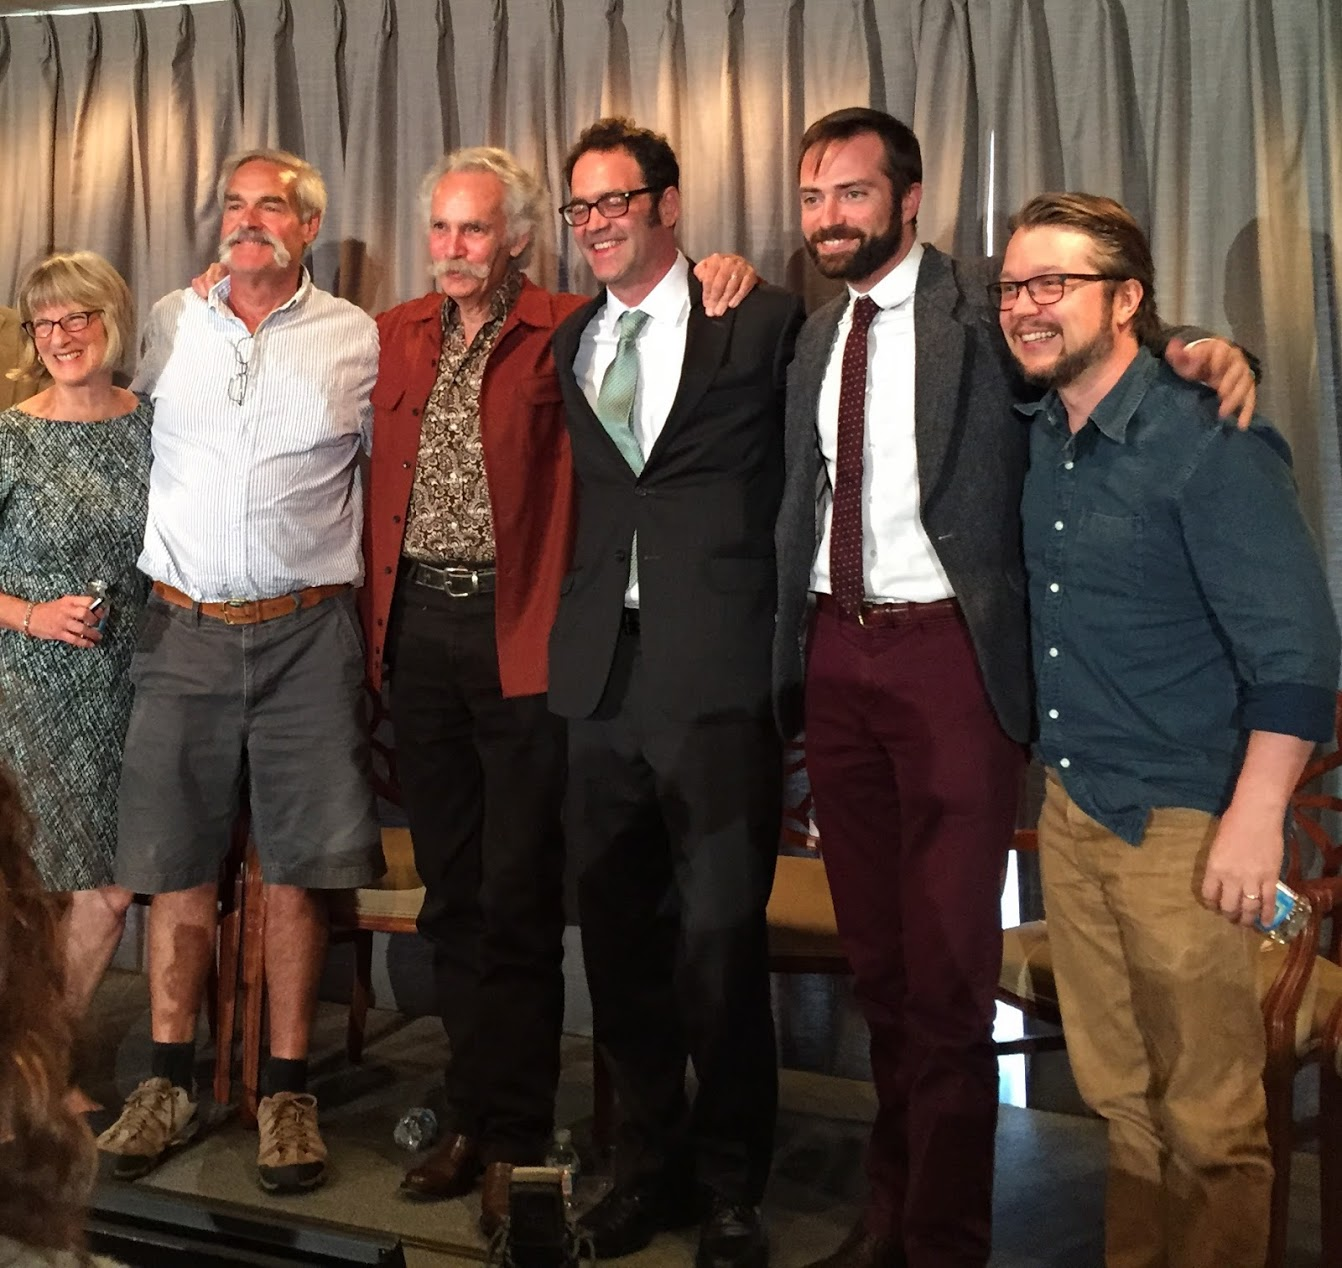 L-R:Betsy Peterson,   Hugh Campbell, Henry Glassie, Clifford R. Murphy, Douglas Peach, and Lance Ledbetter